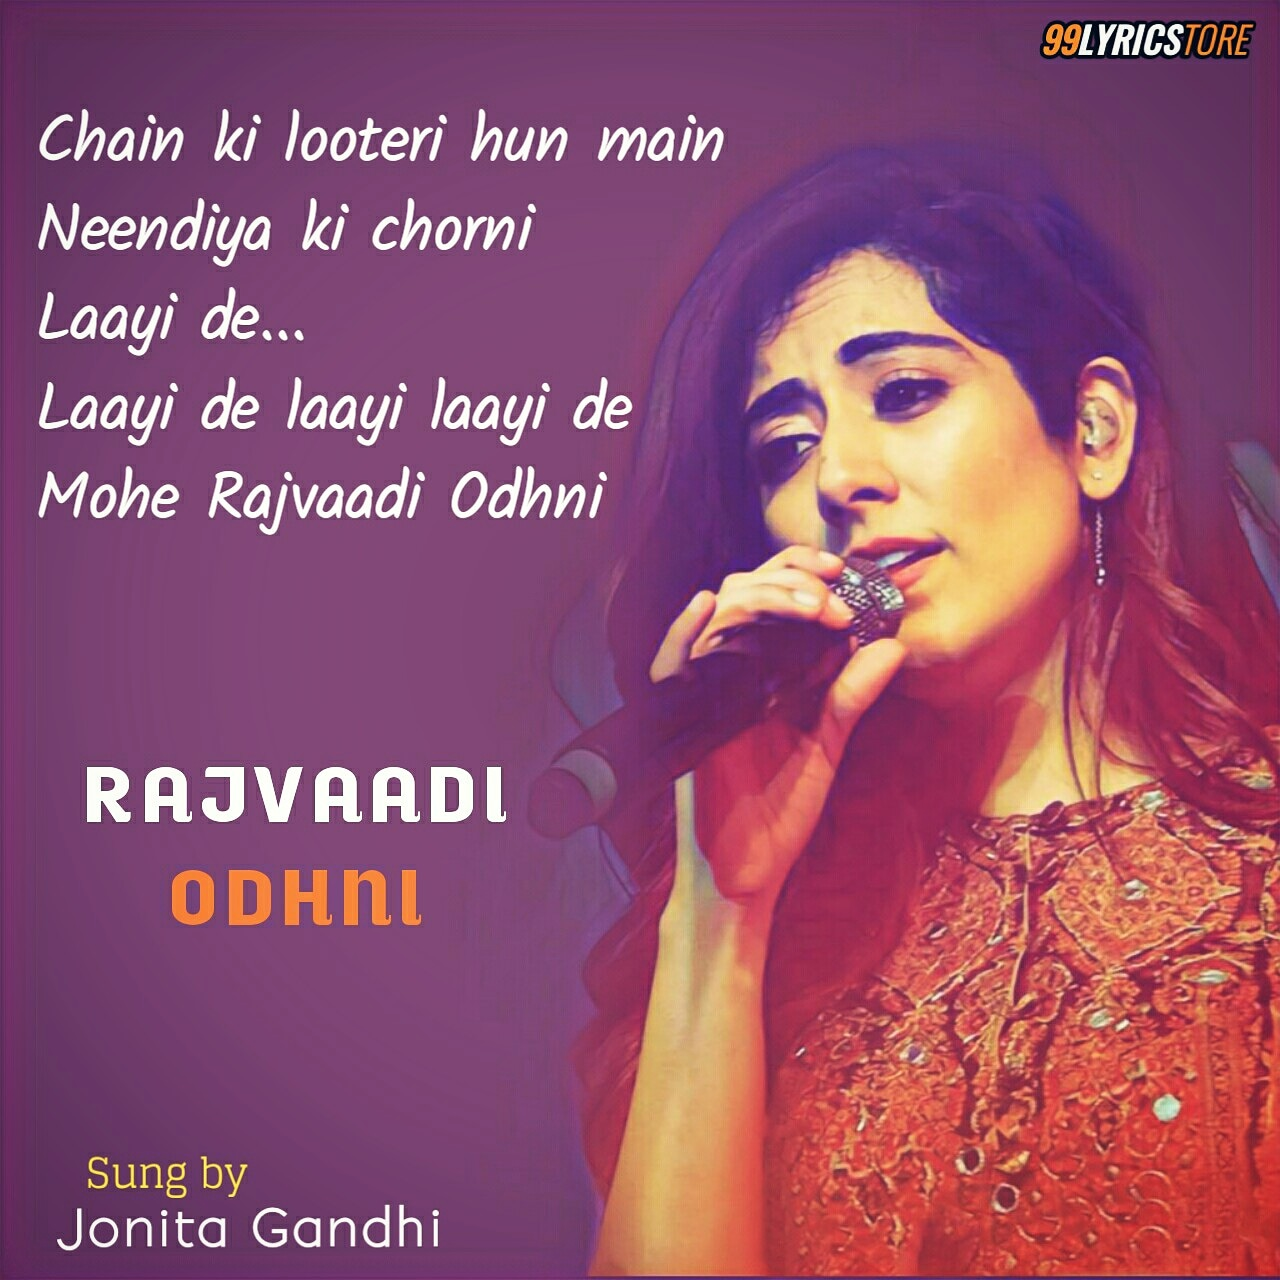 Latest song 'Raajvadi Odhni' in the voice of 'Jonita Gandhi' from bollywood movie 'Kalank'. Music composed by 'Pritam' and Lyricist of this song is 'Amitabh Bhattacharya'. Music Label is Zee Music Company.